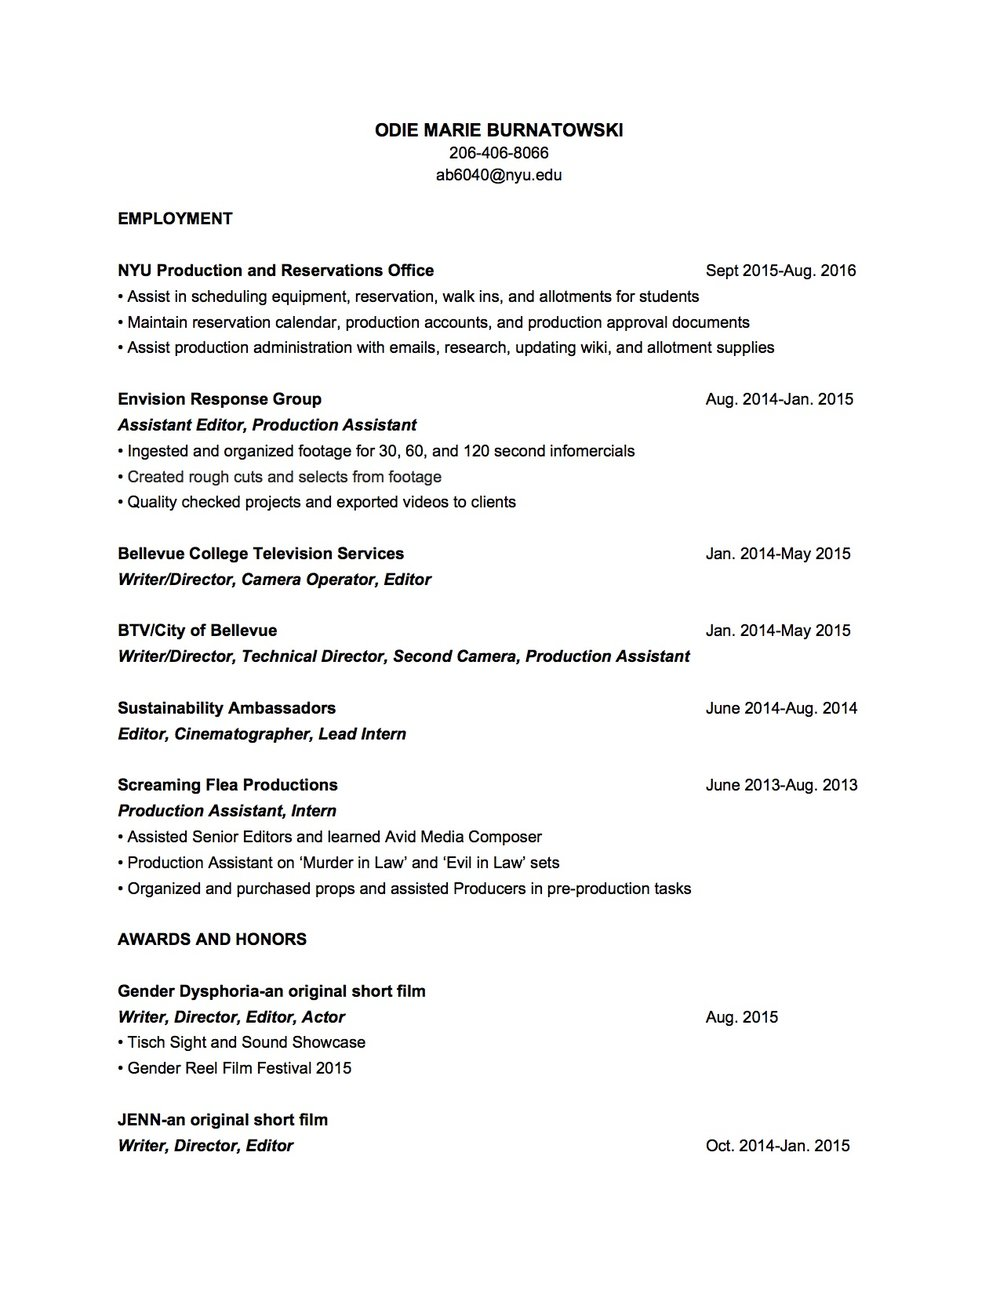 Resume Services Testimonials A countless list of satisfied Yelp Resume for  Joshua Cunningham